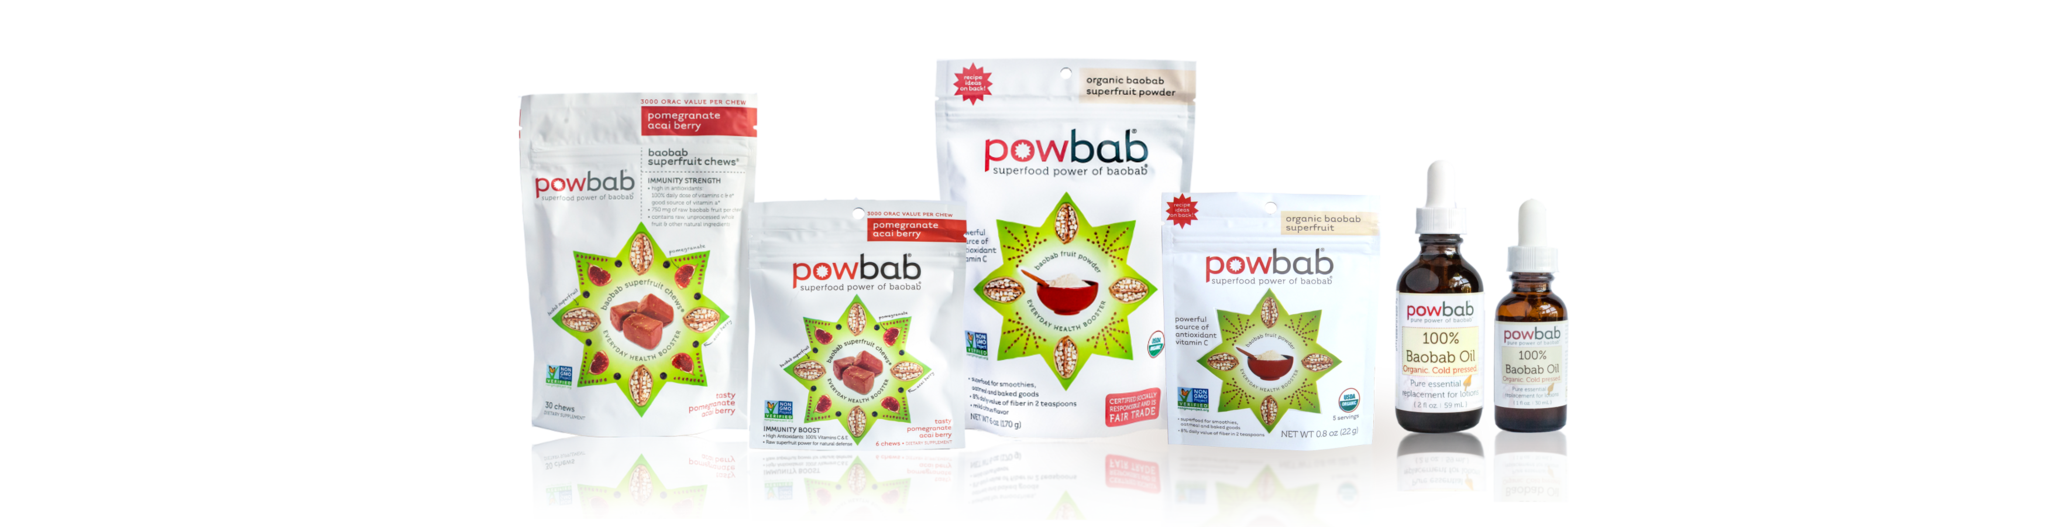 all powbab products